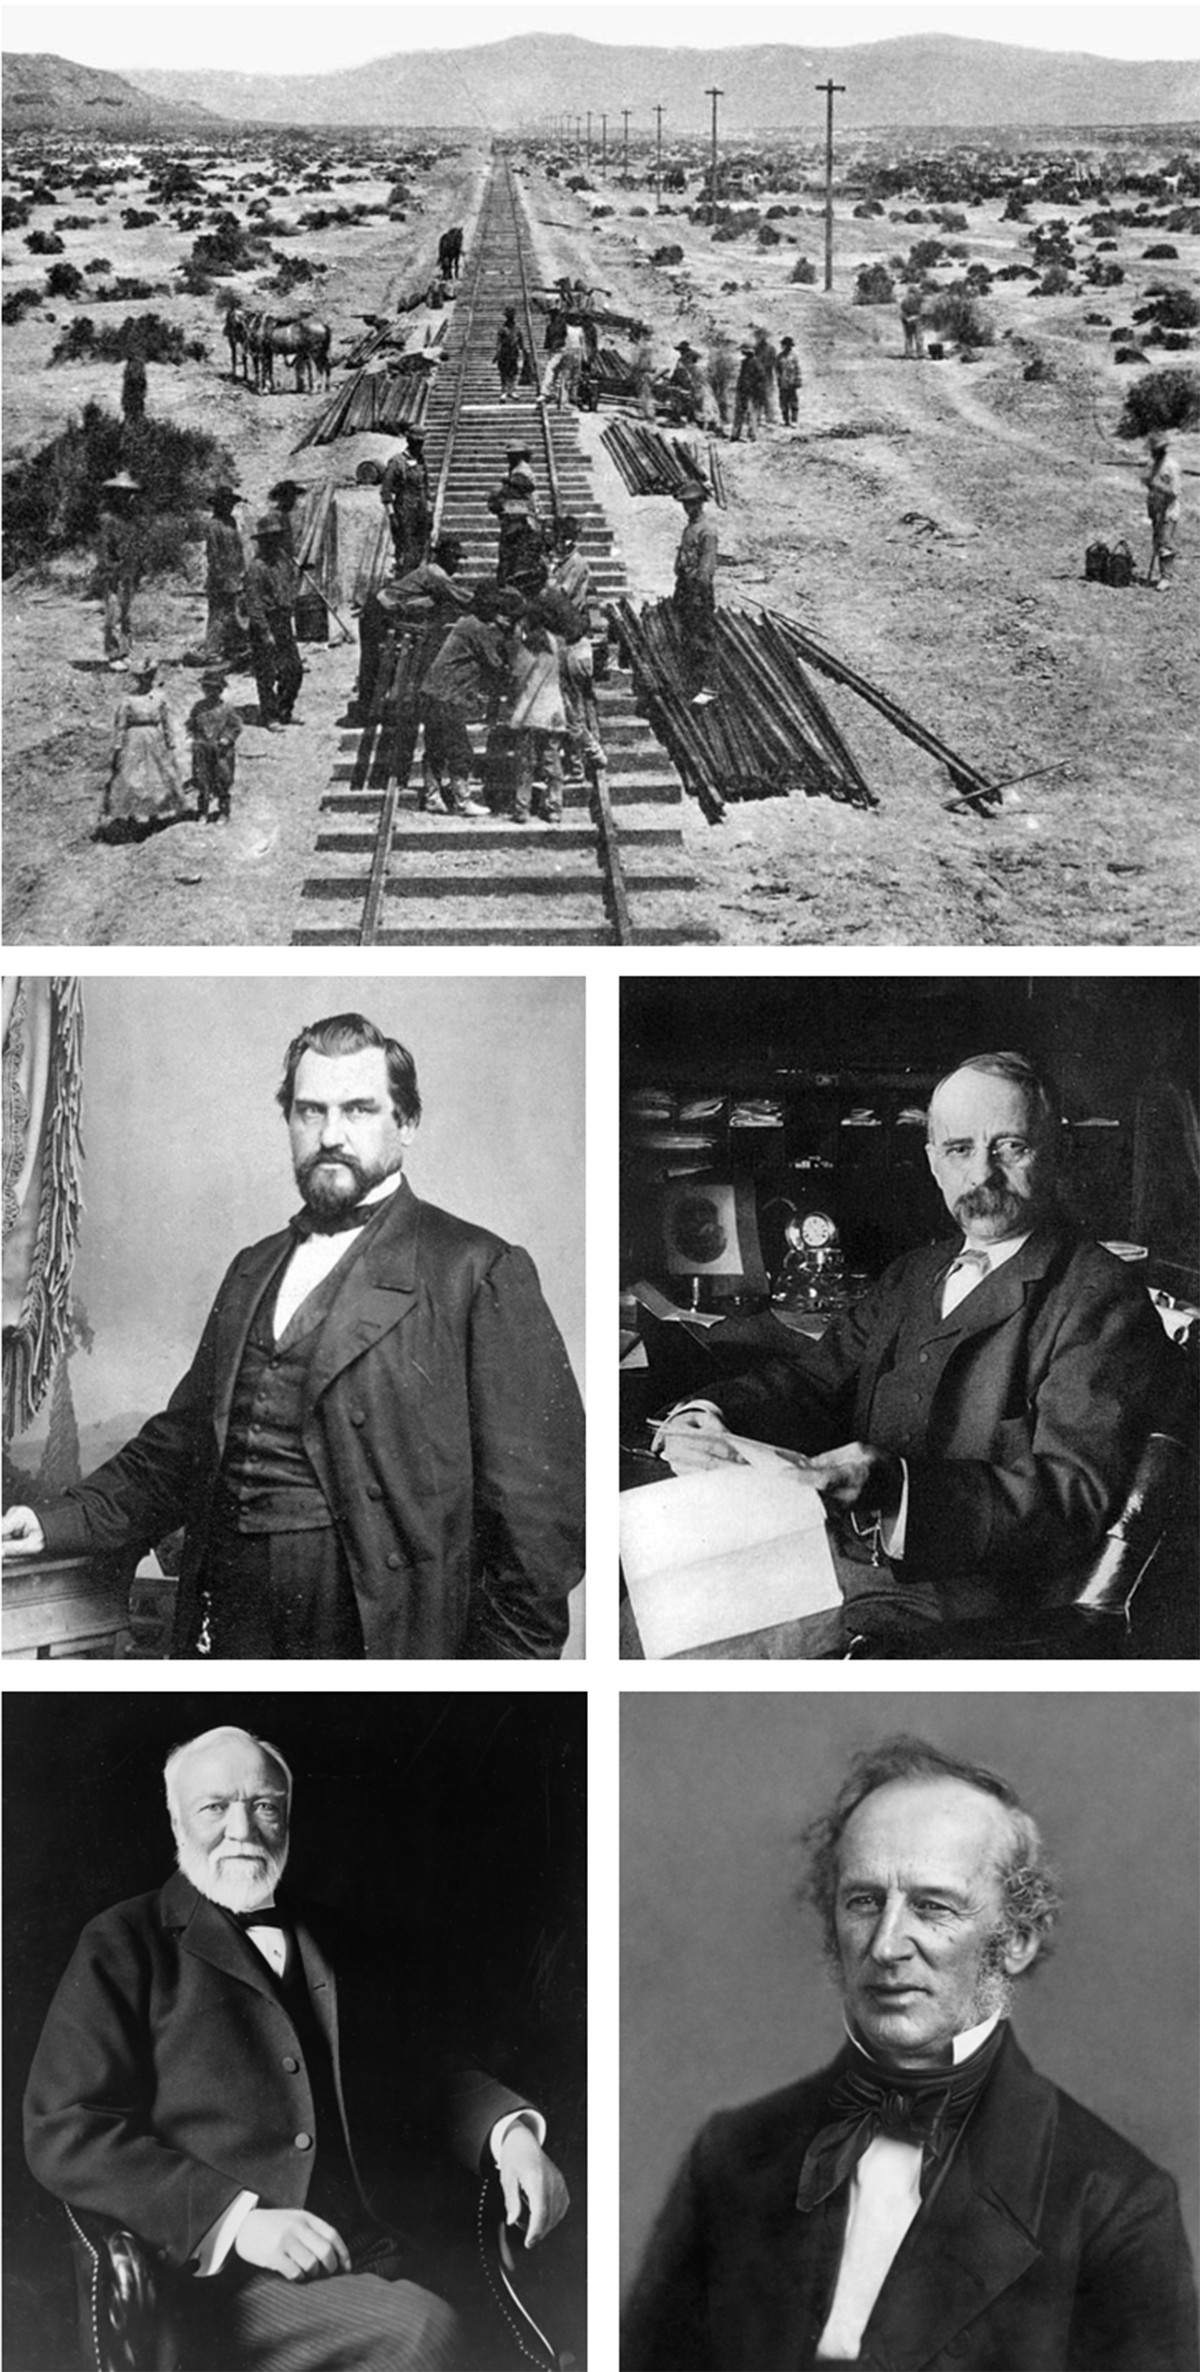 INVESTMENT IN INFRASTRUCTURE The federal government funded the transcontinental railroad and its expansion into a nation wide system. Railroad entrepreneurs then built business empires based on that infrastructure (Above: the transcontinental railroad under construction; Below: clockwise from upper left: Leland Stanford, Walter H Harriman, Cornelius Vanderbilt, Andrew Carnegie).